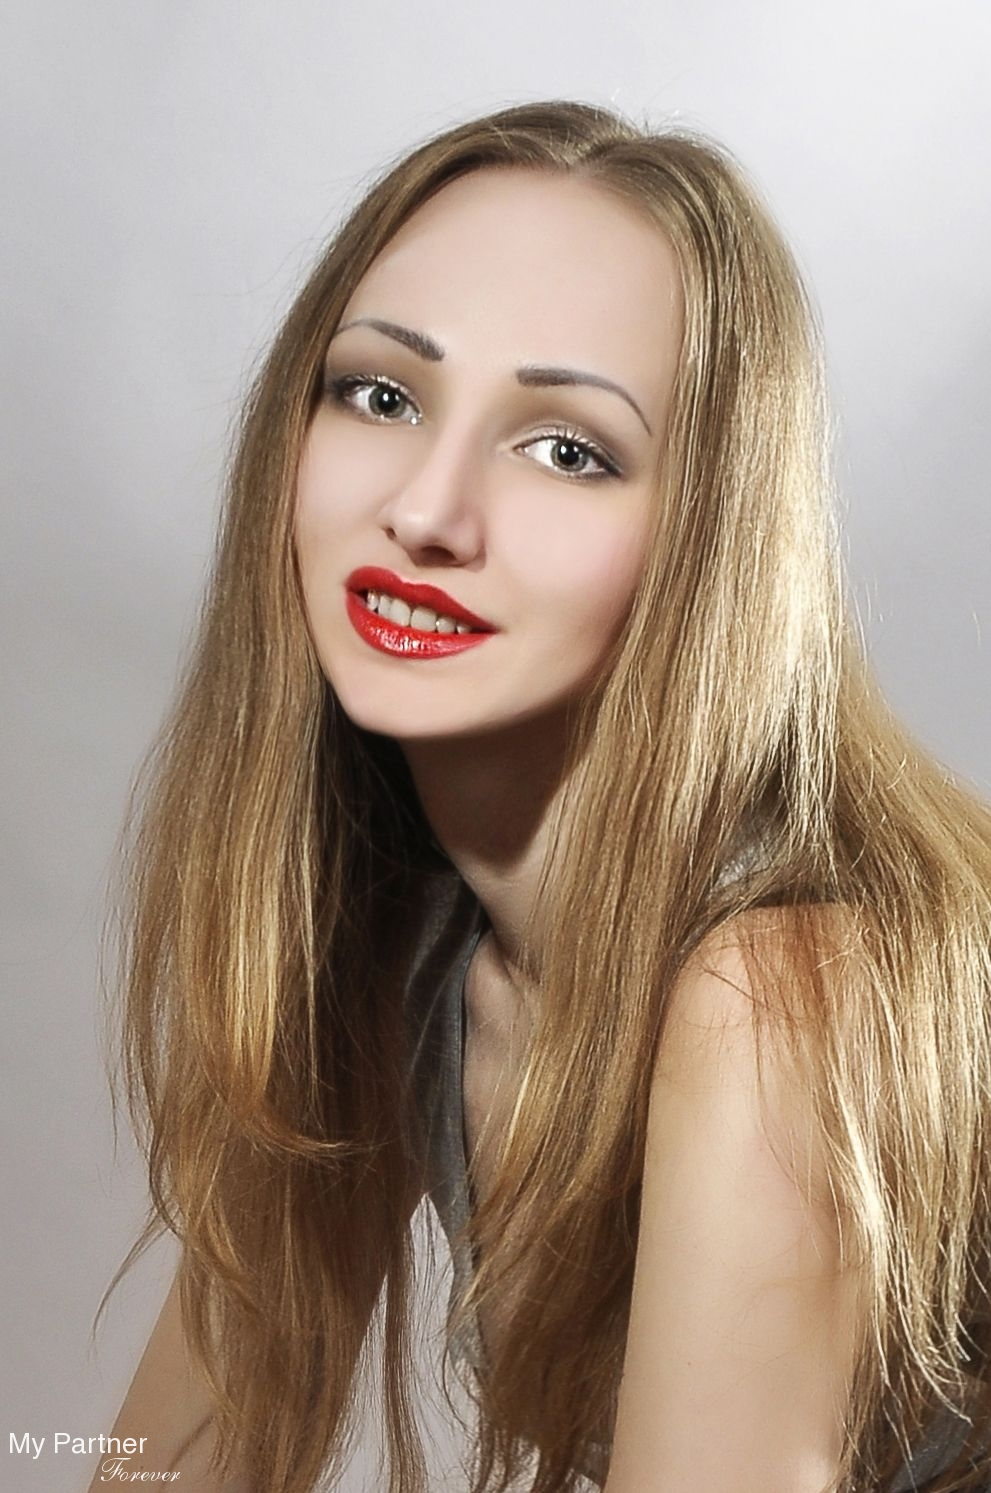 sevastopol latin dating site Find love with loveawake sevastopol speed dating site more than just a dating site, we find compatible successful singles from sevastopol, ukraine looking for a online relationship serious and no strings attached.